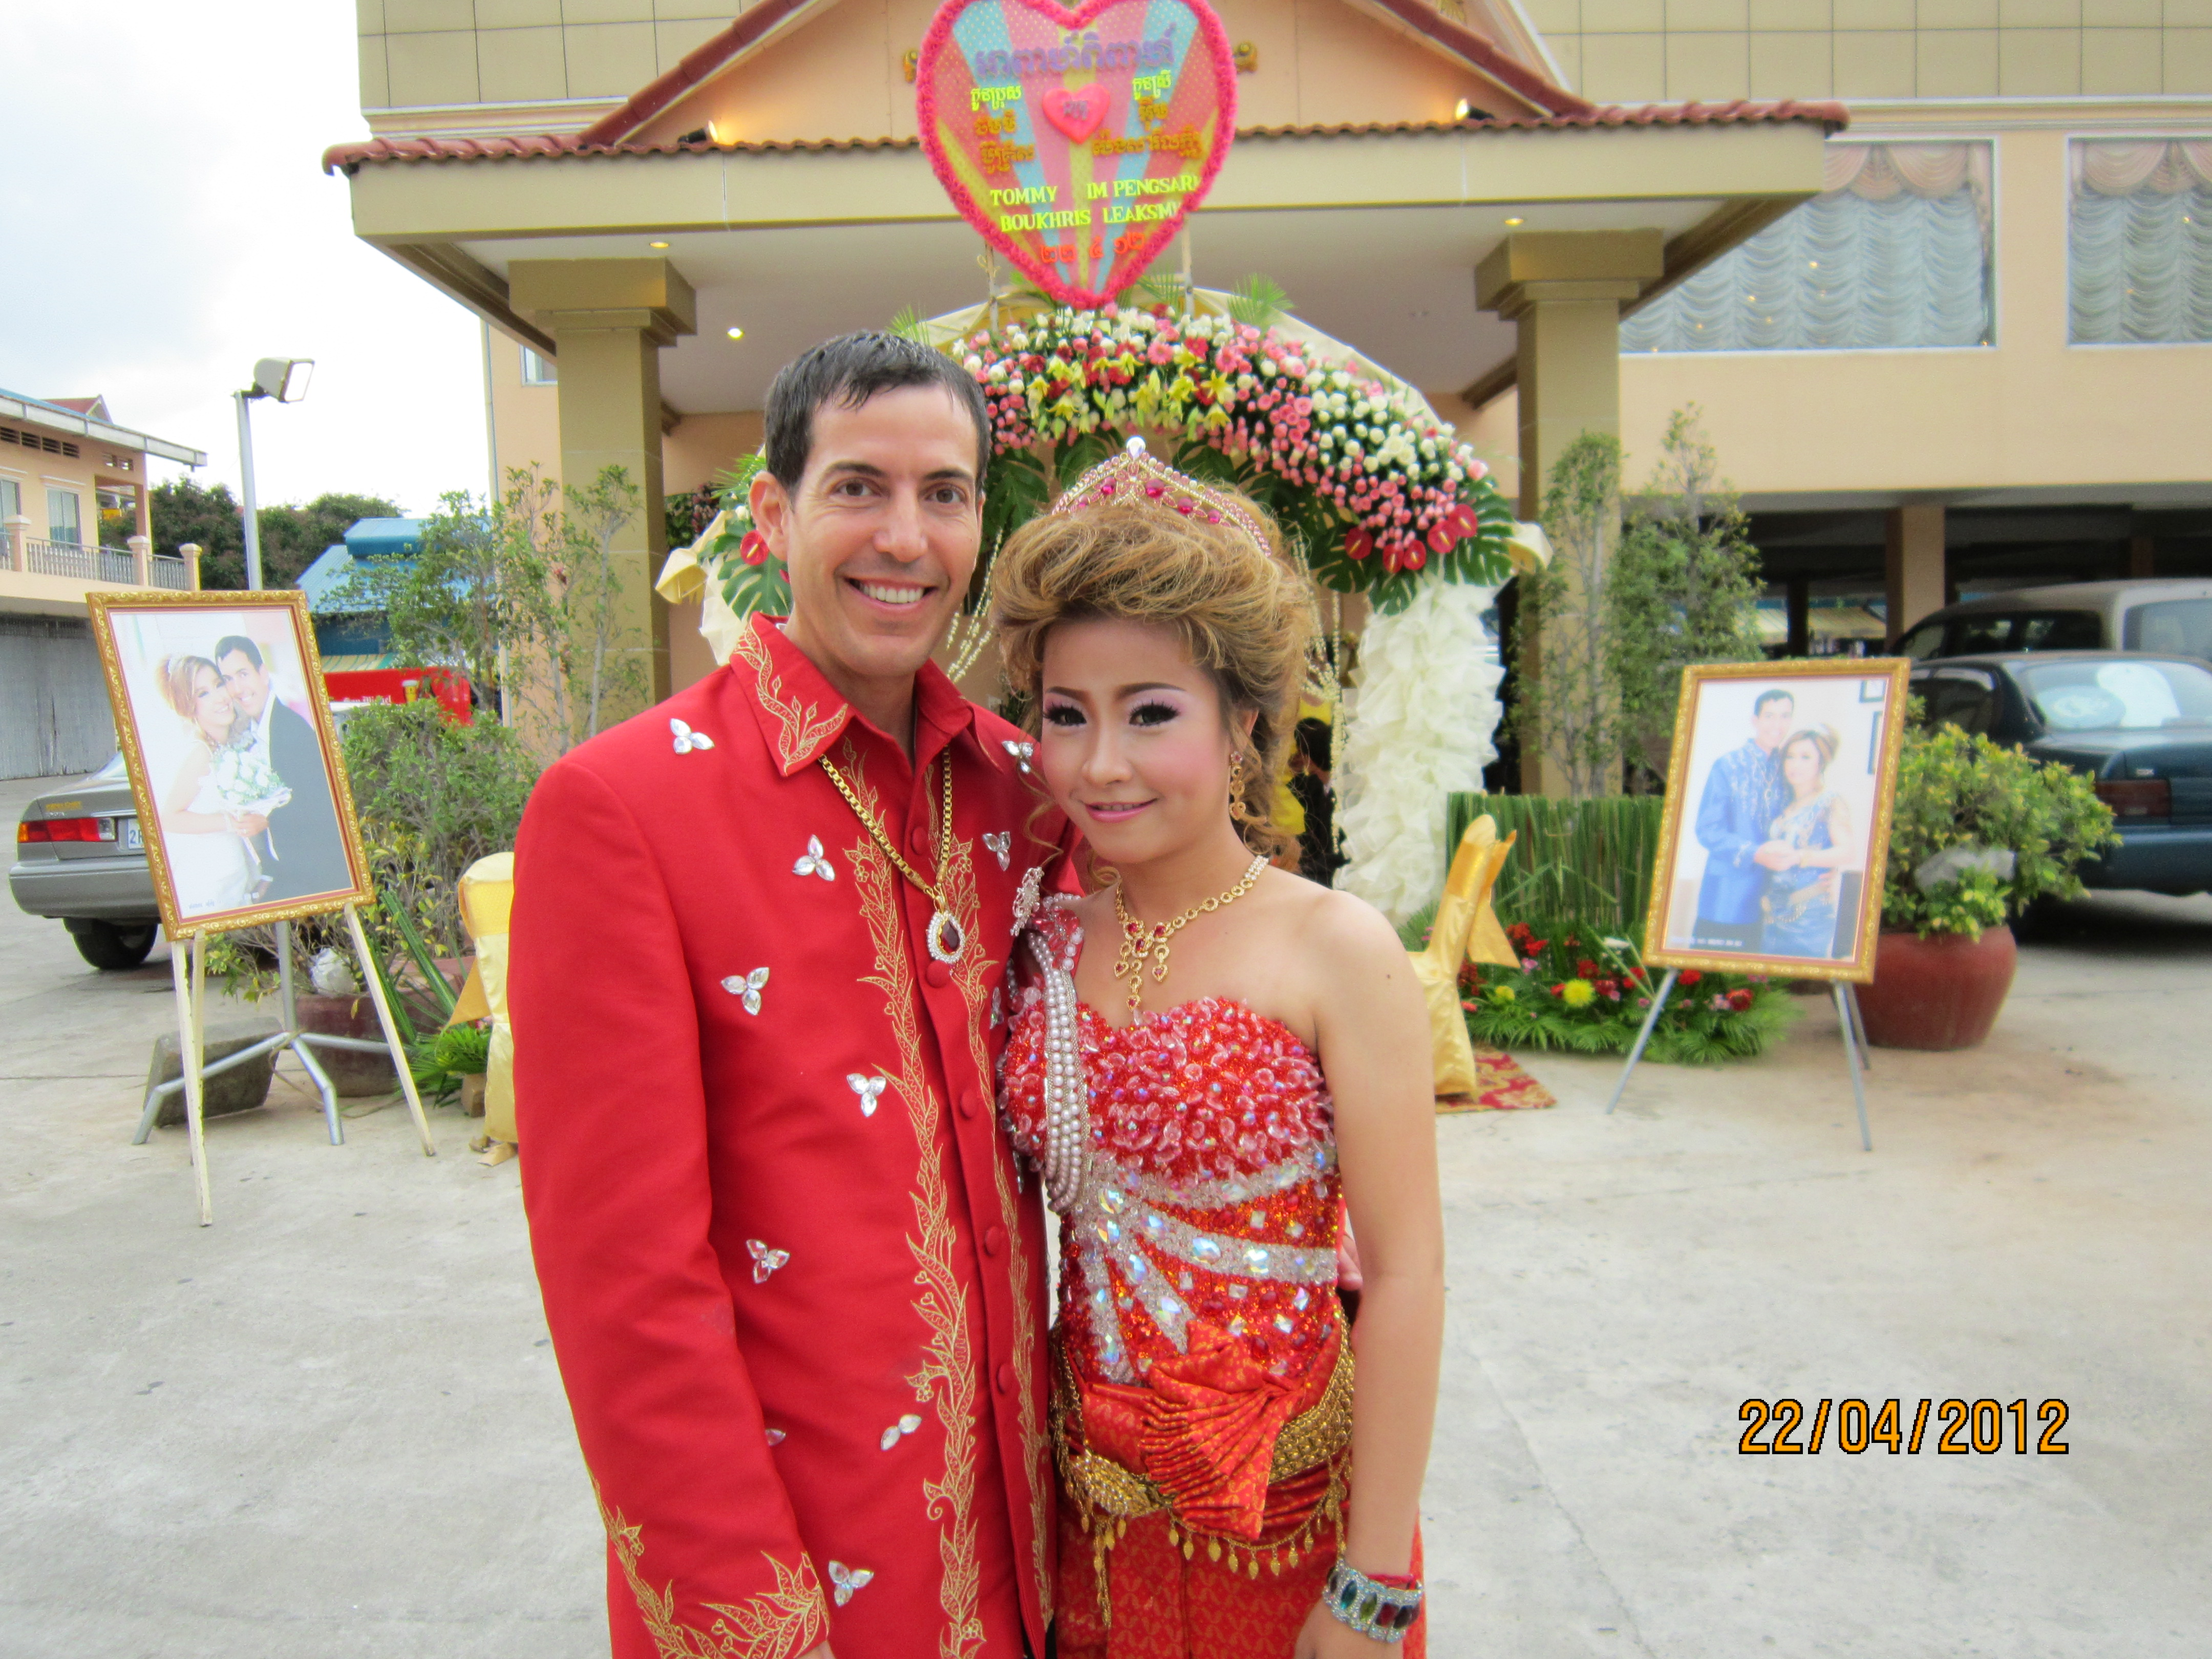 Tommy and Leaksmy on their wedding day